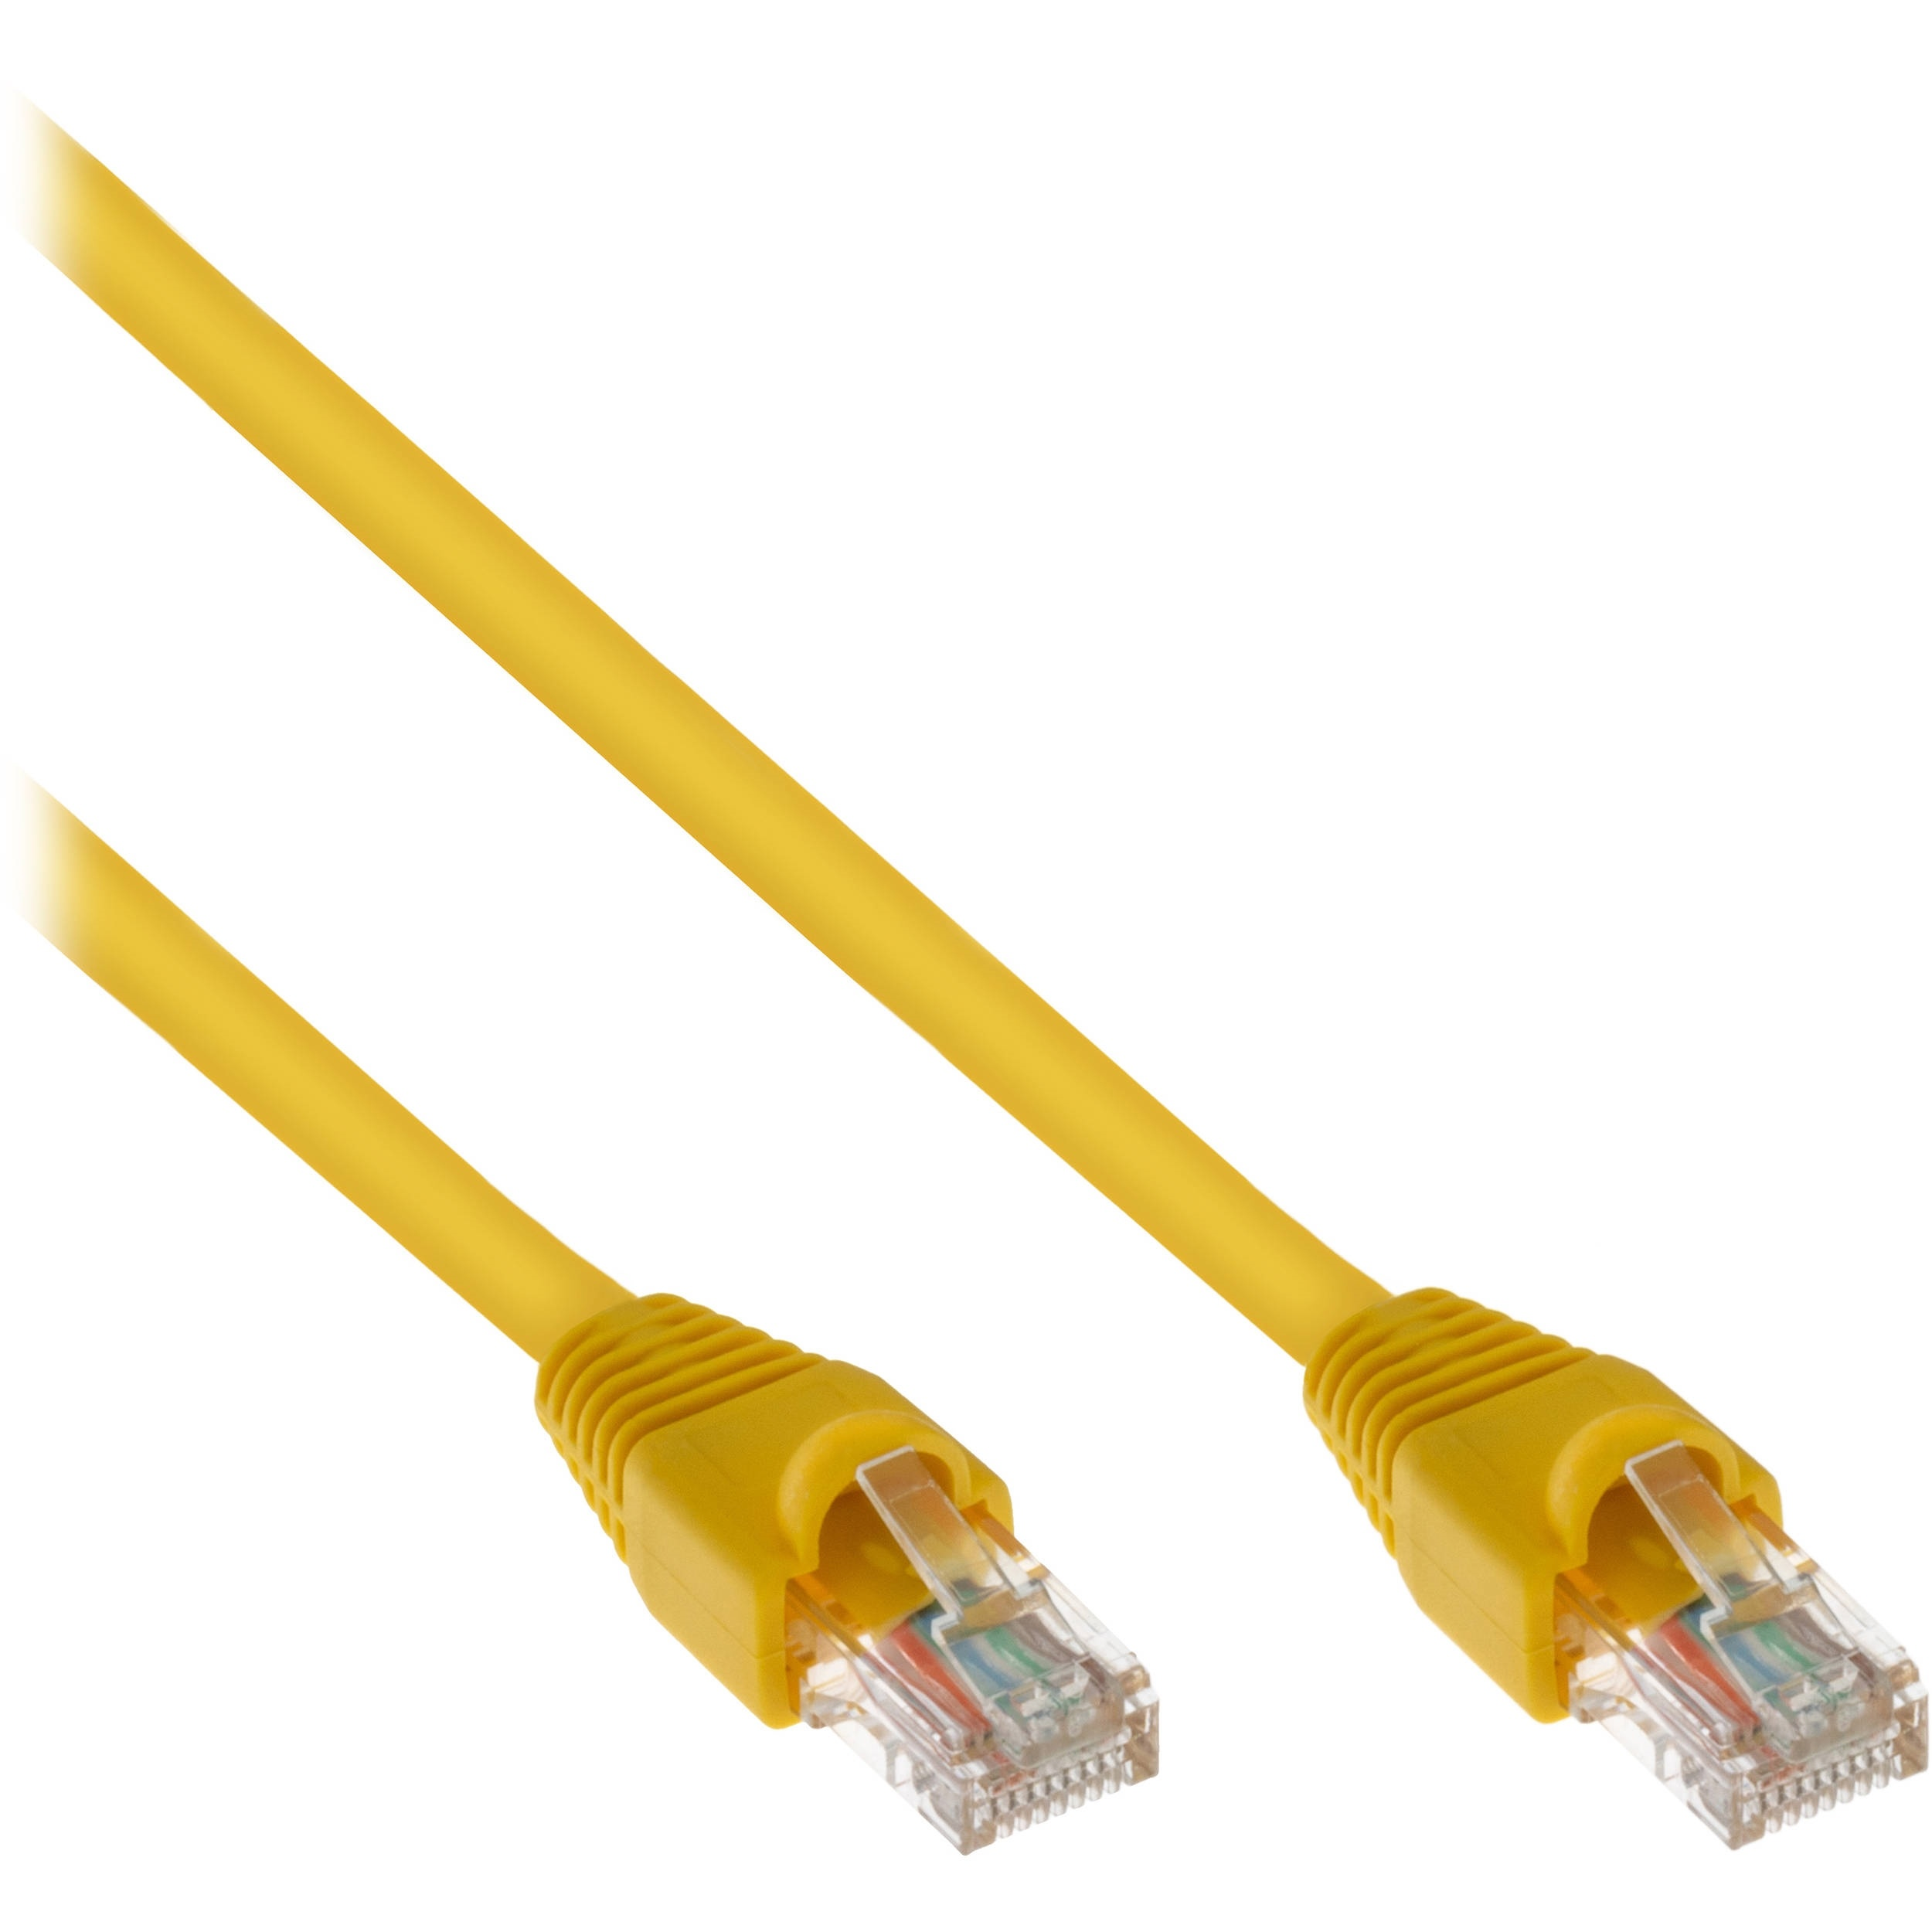 Pearstone Cat 5e Snagless Patch Cable (100', Yellow)